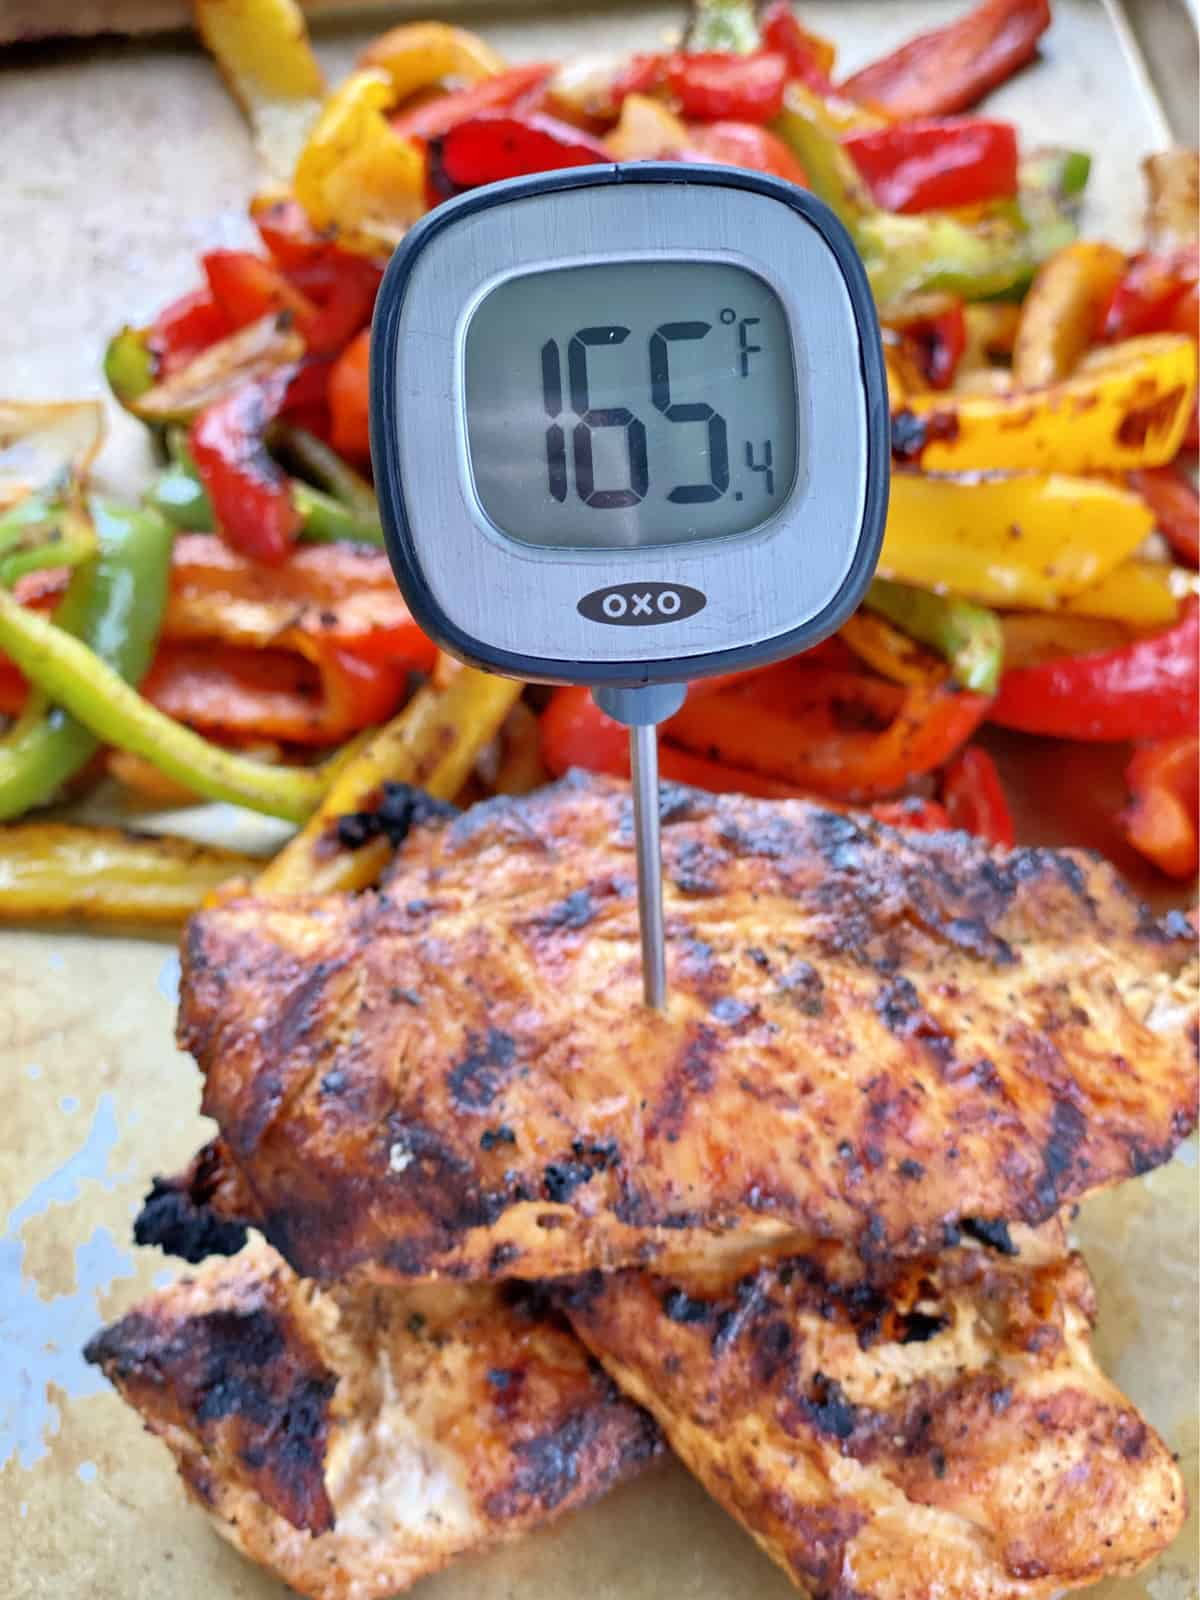 OXO digital thermometer reading 165 degrees Fahrenheit stuck in a chicken breast.